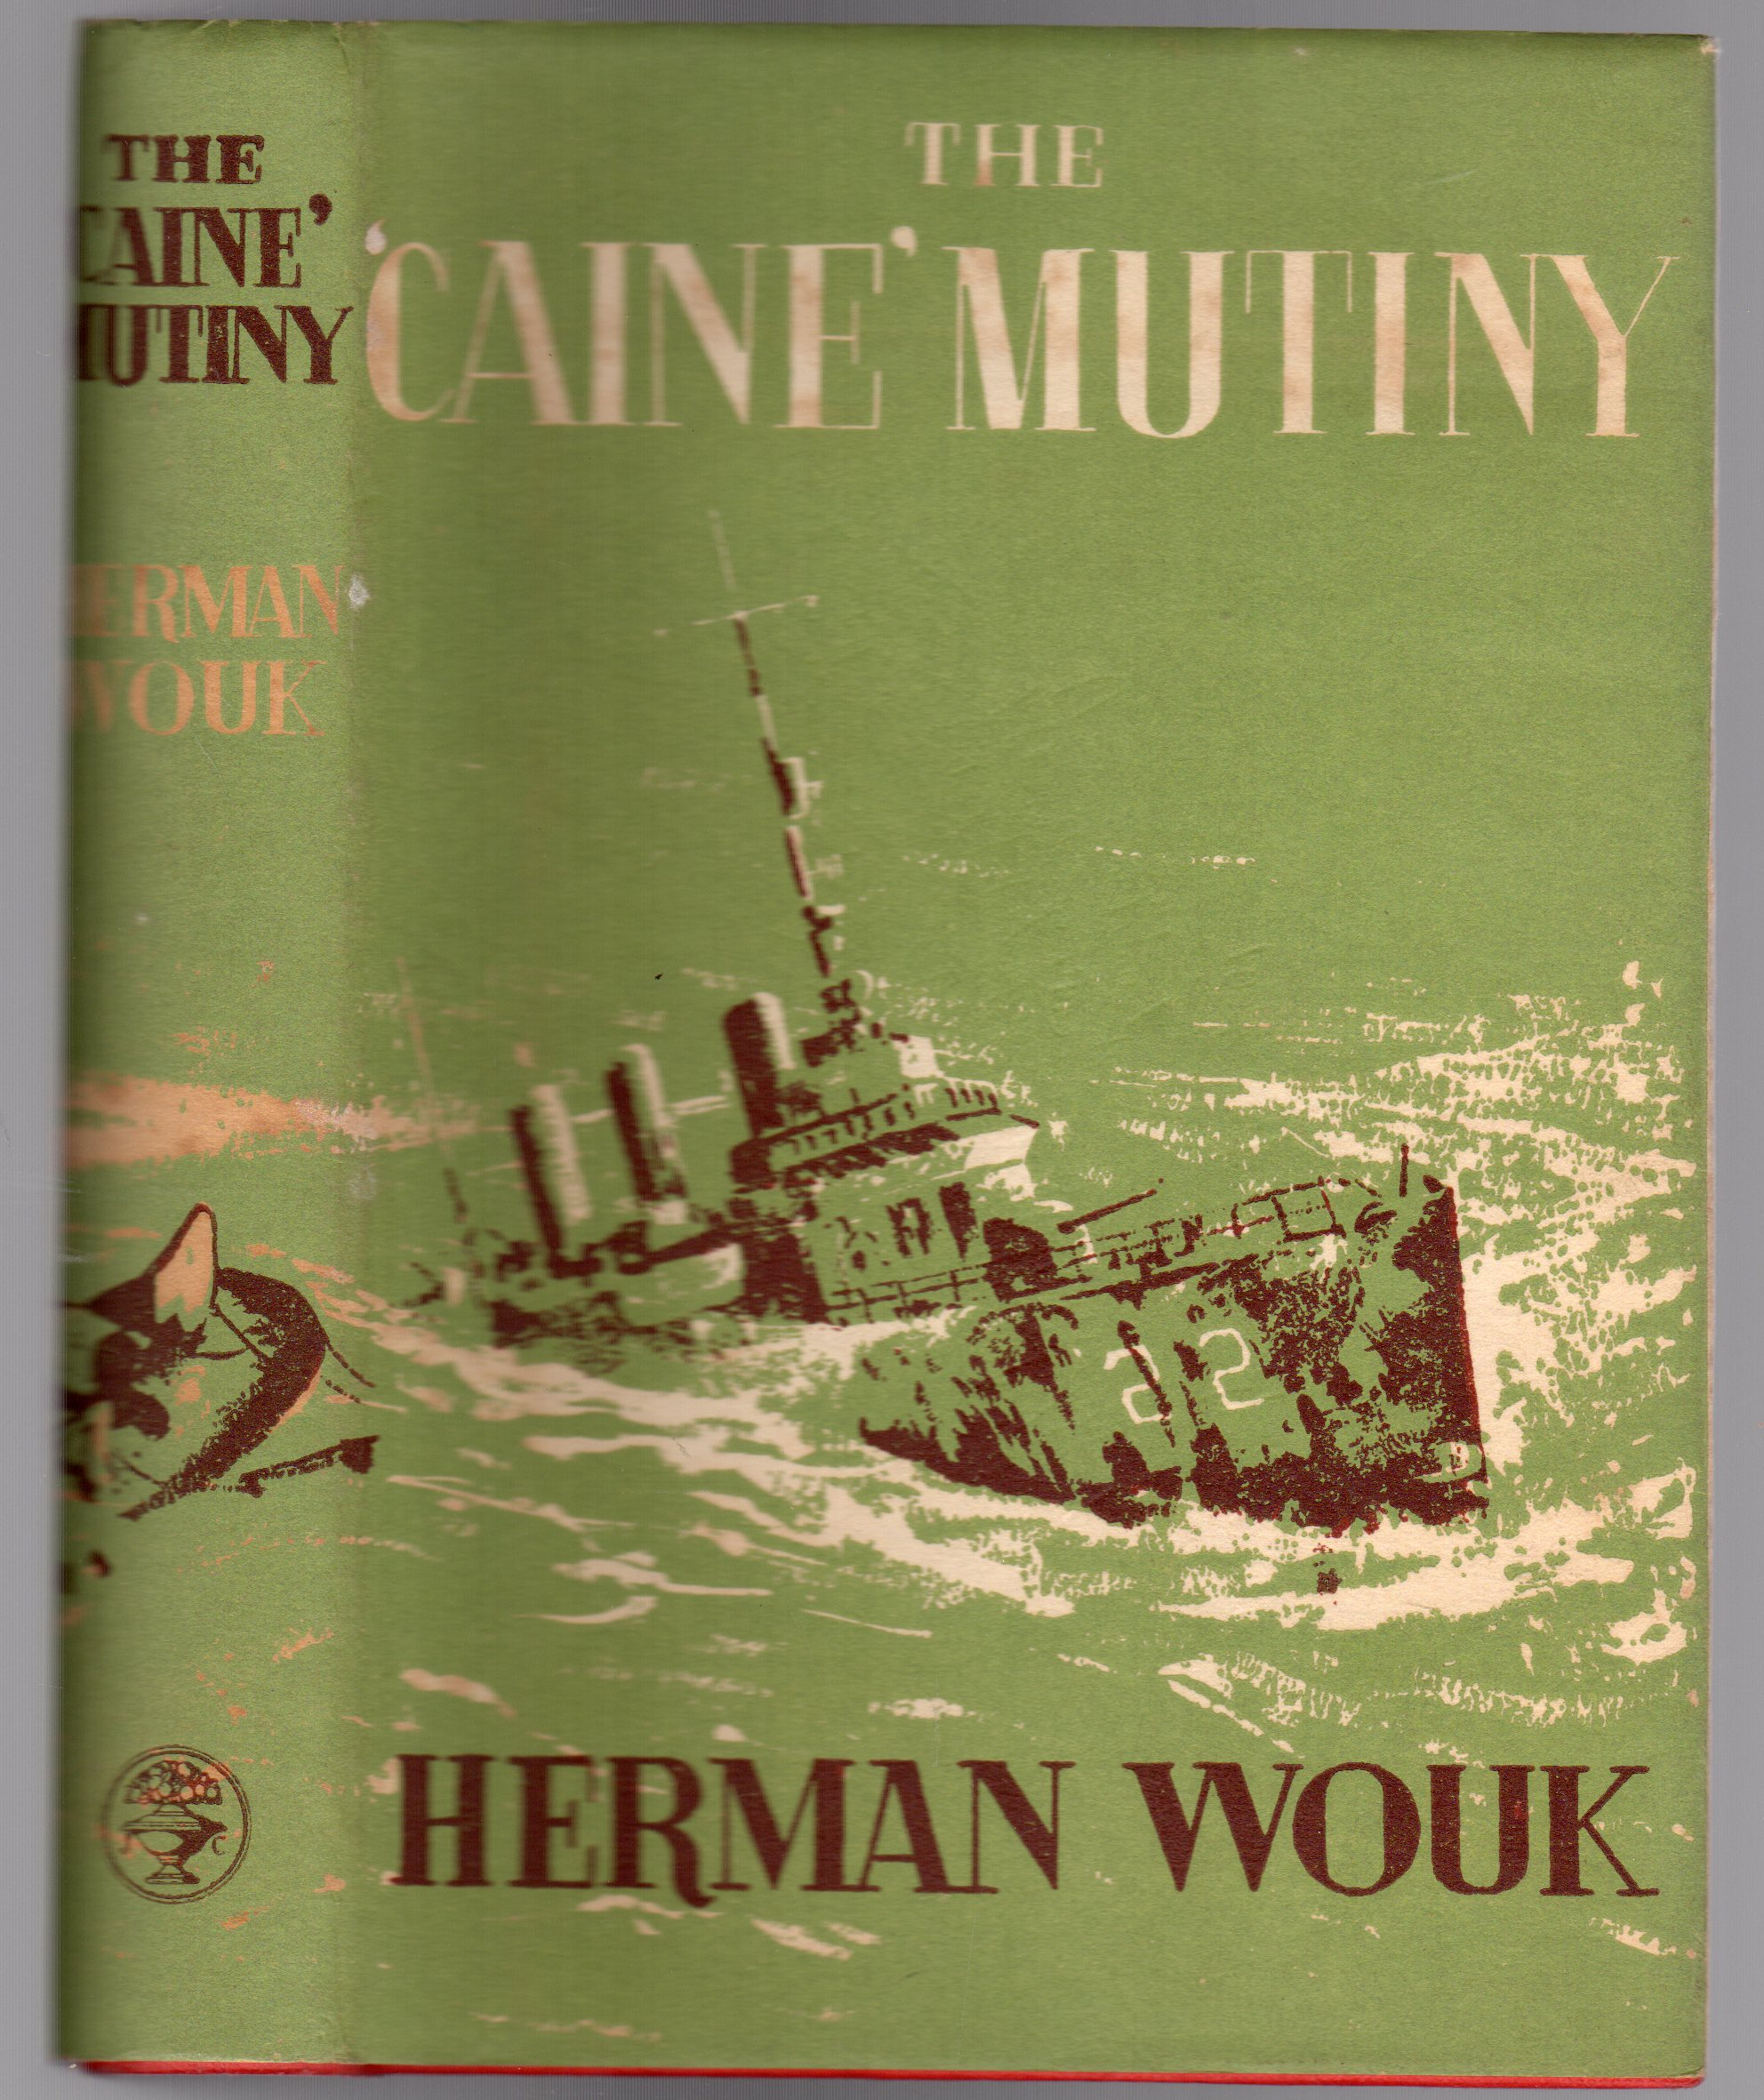 Image for The 'Caine' Mutiny